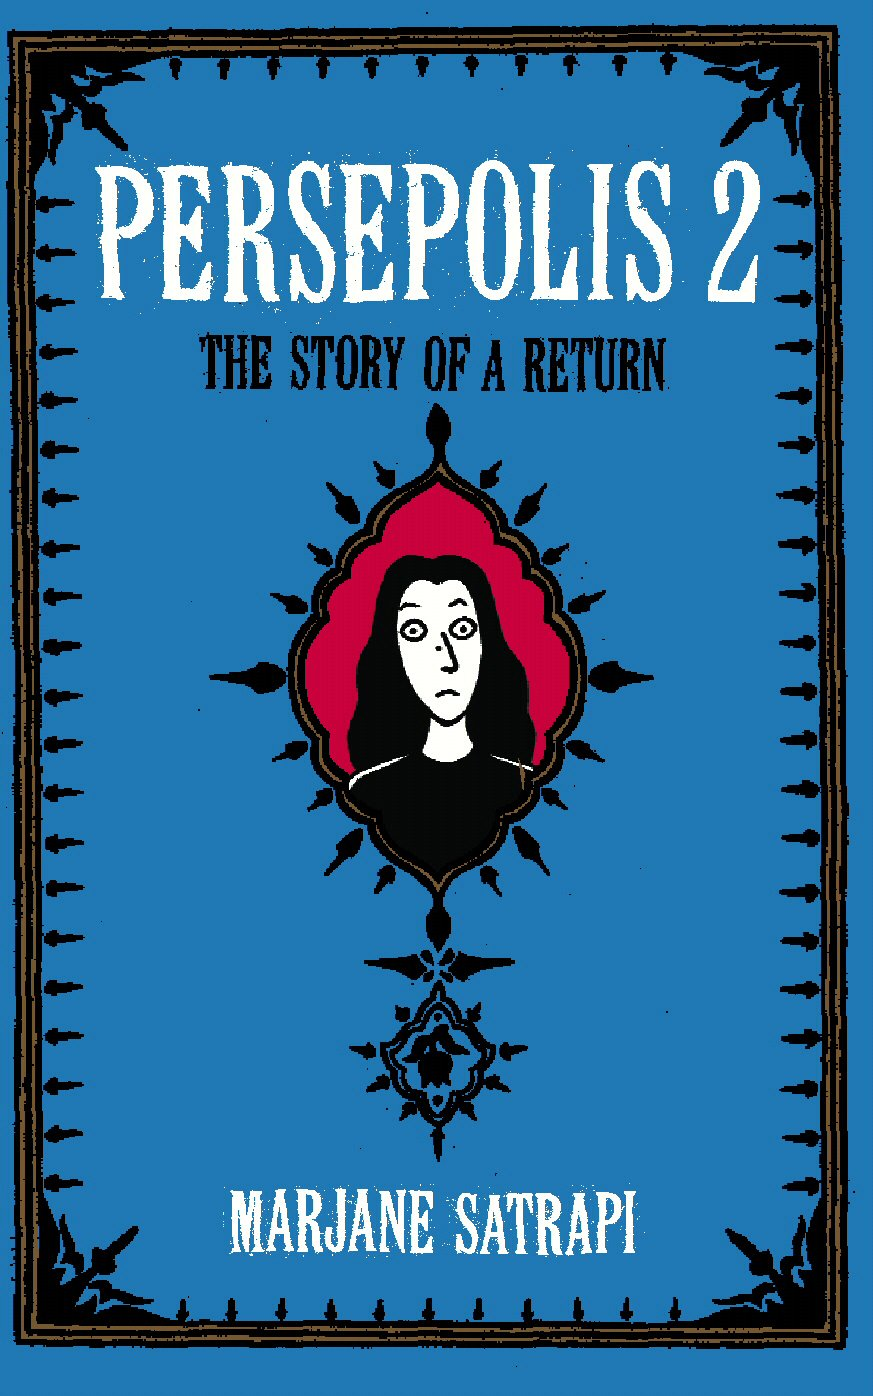 Persepolis 2 The Story Of A Return By Marjane Satrapi Epilogue Books Chocolate Brews